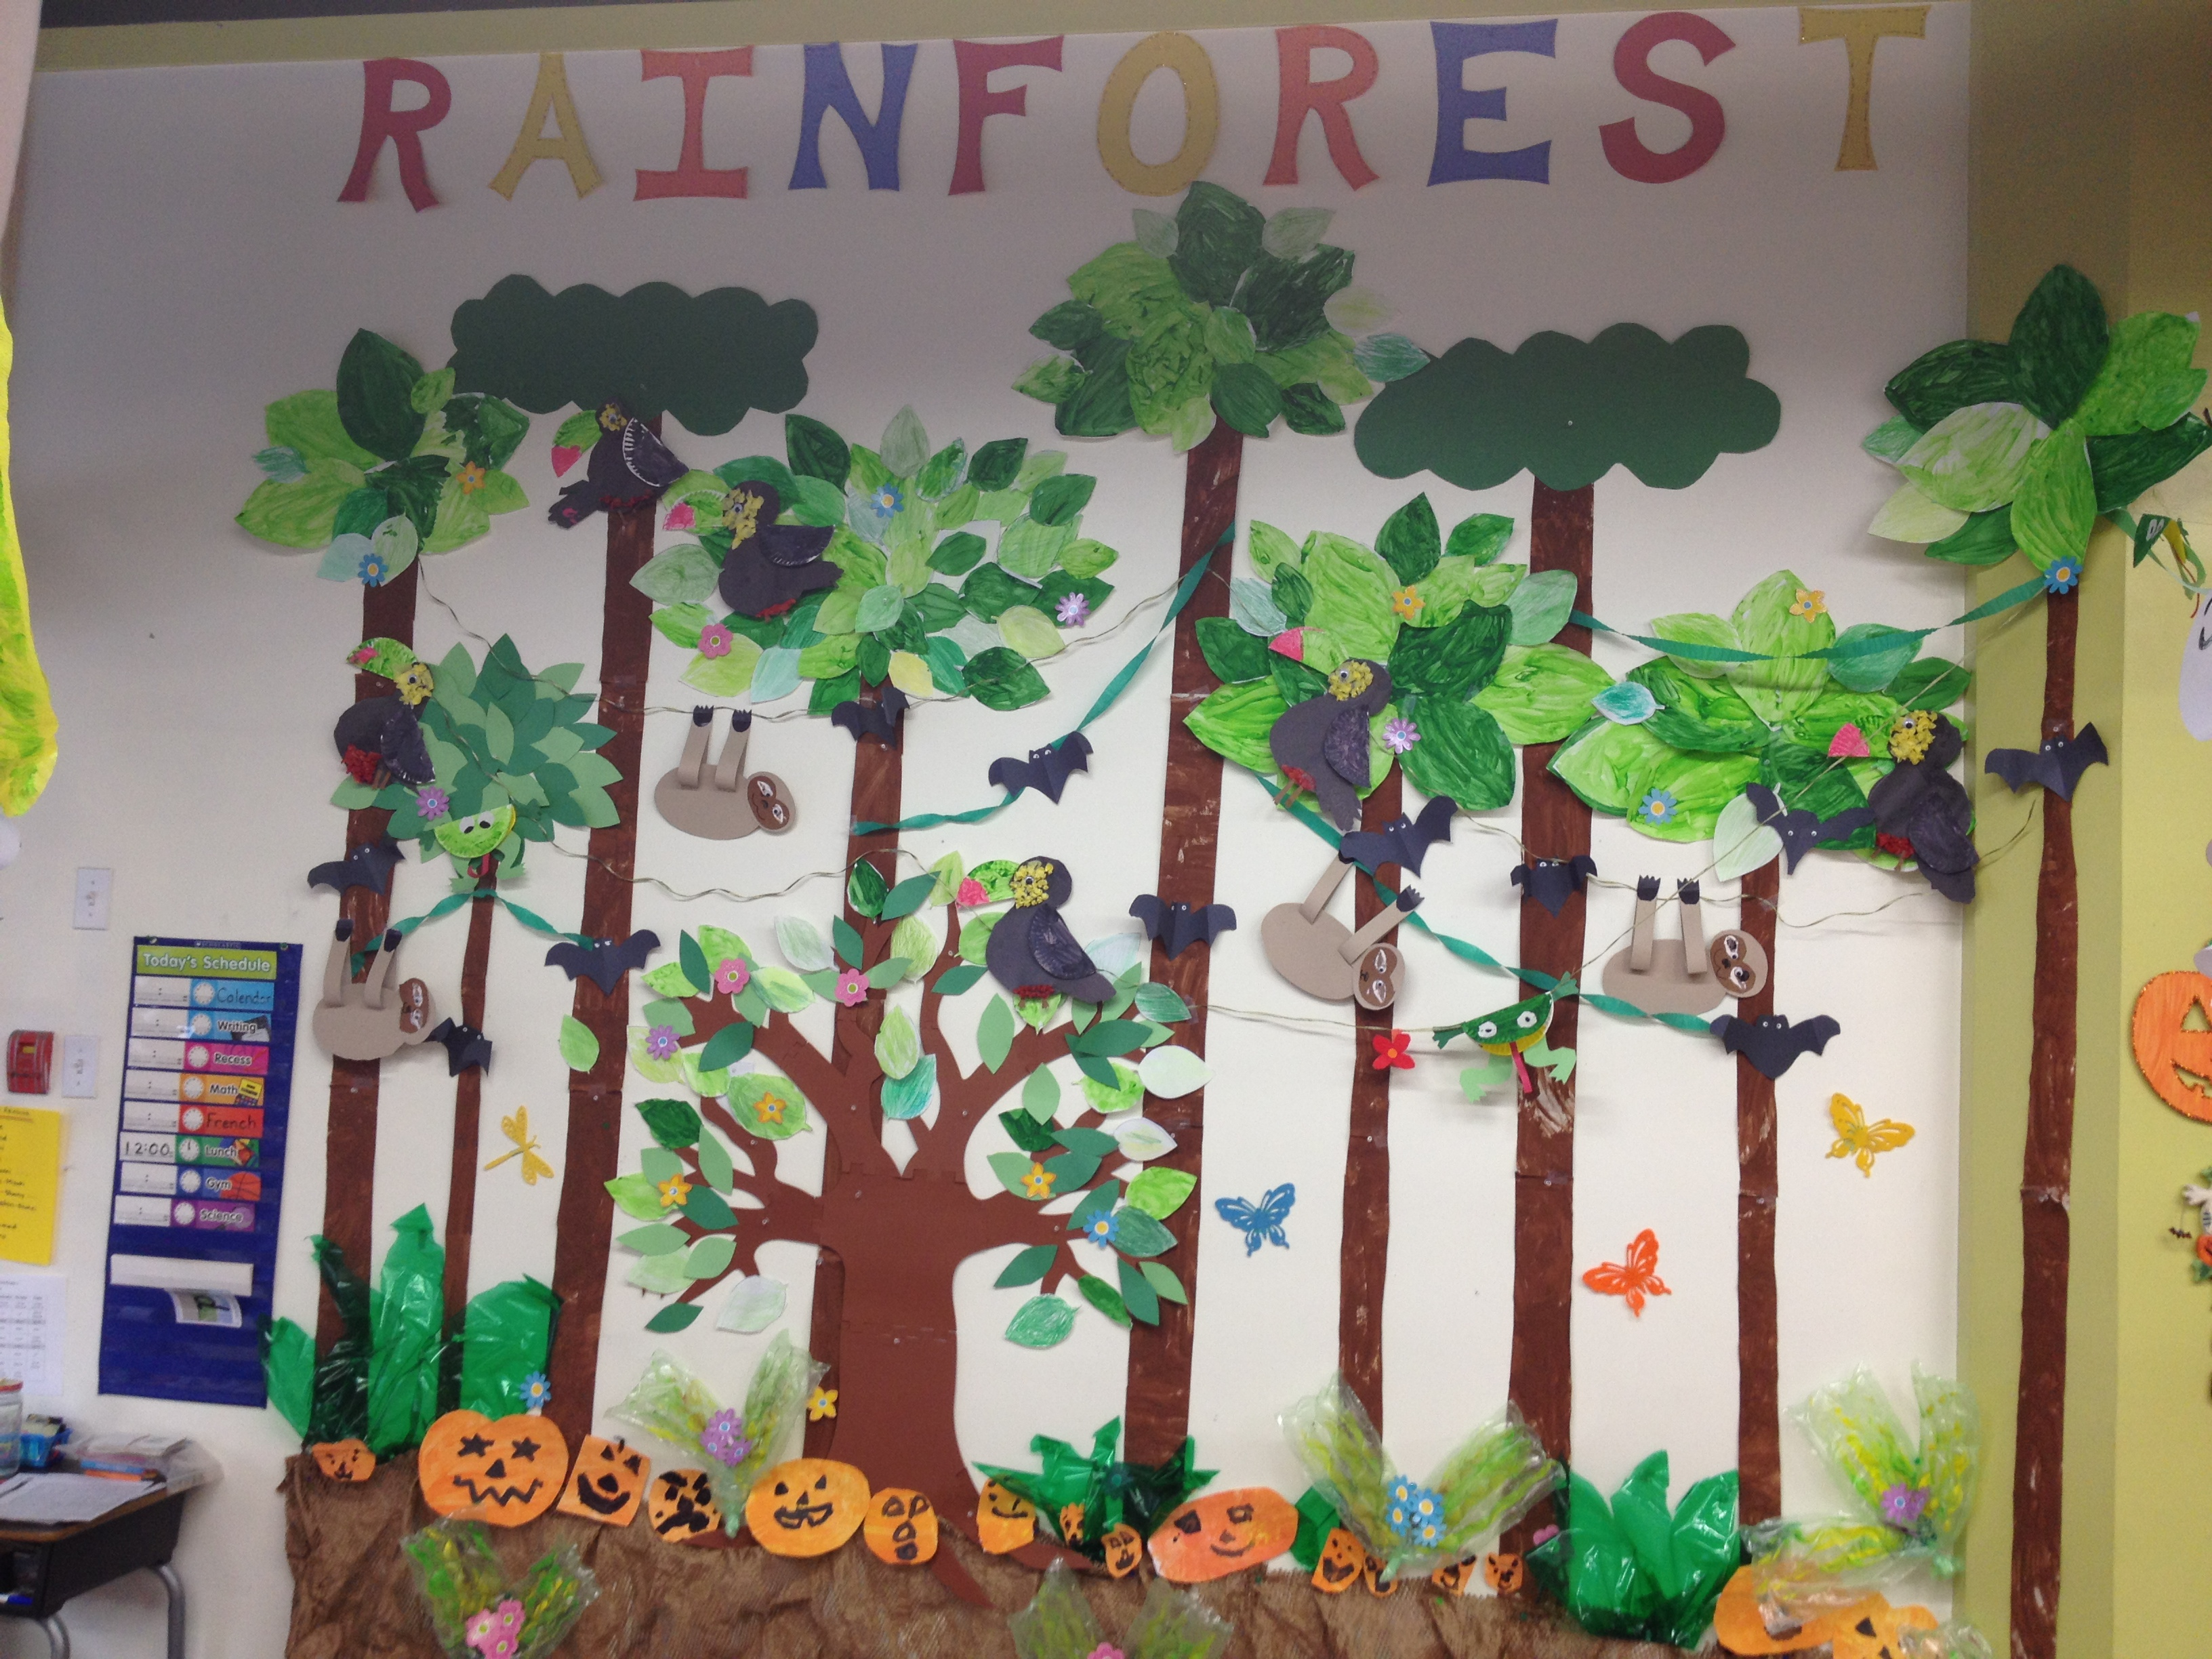 Drawn rainforest display ks2 Crafts Rainforest classroom Pinterest Classroom